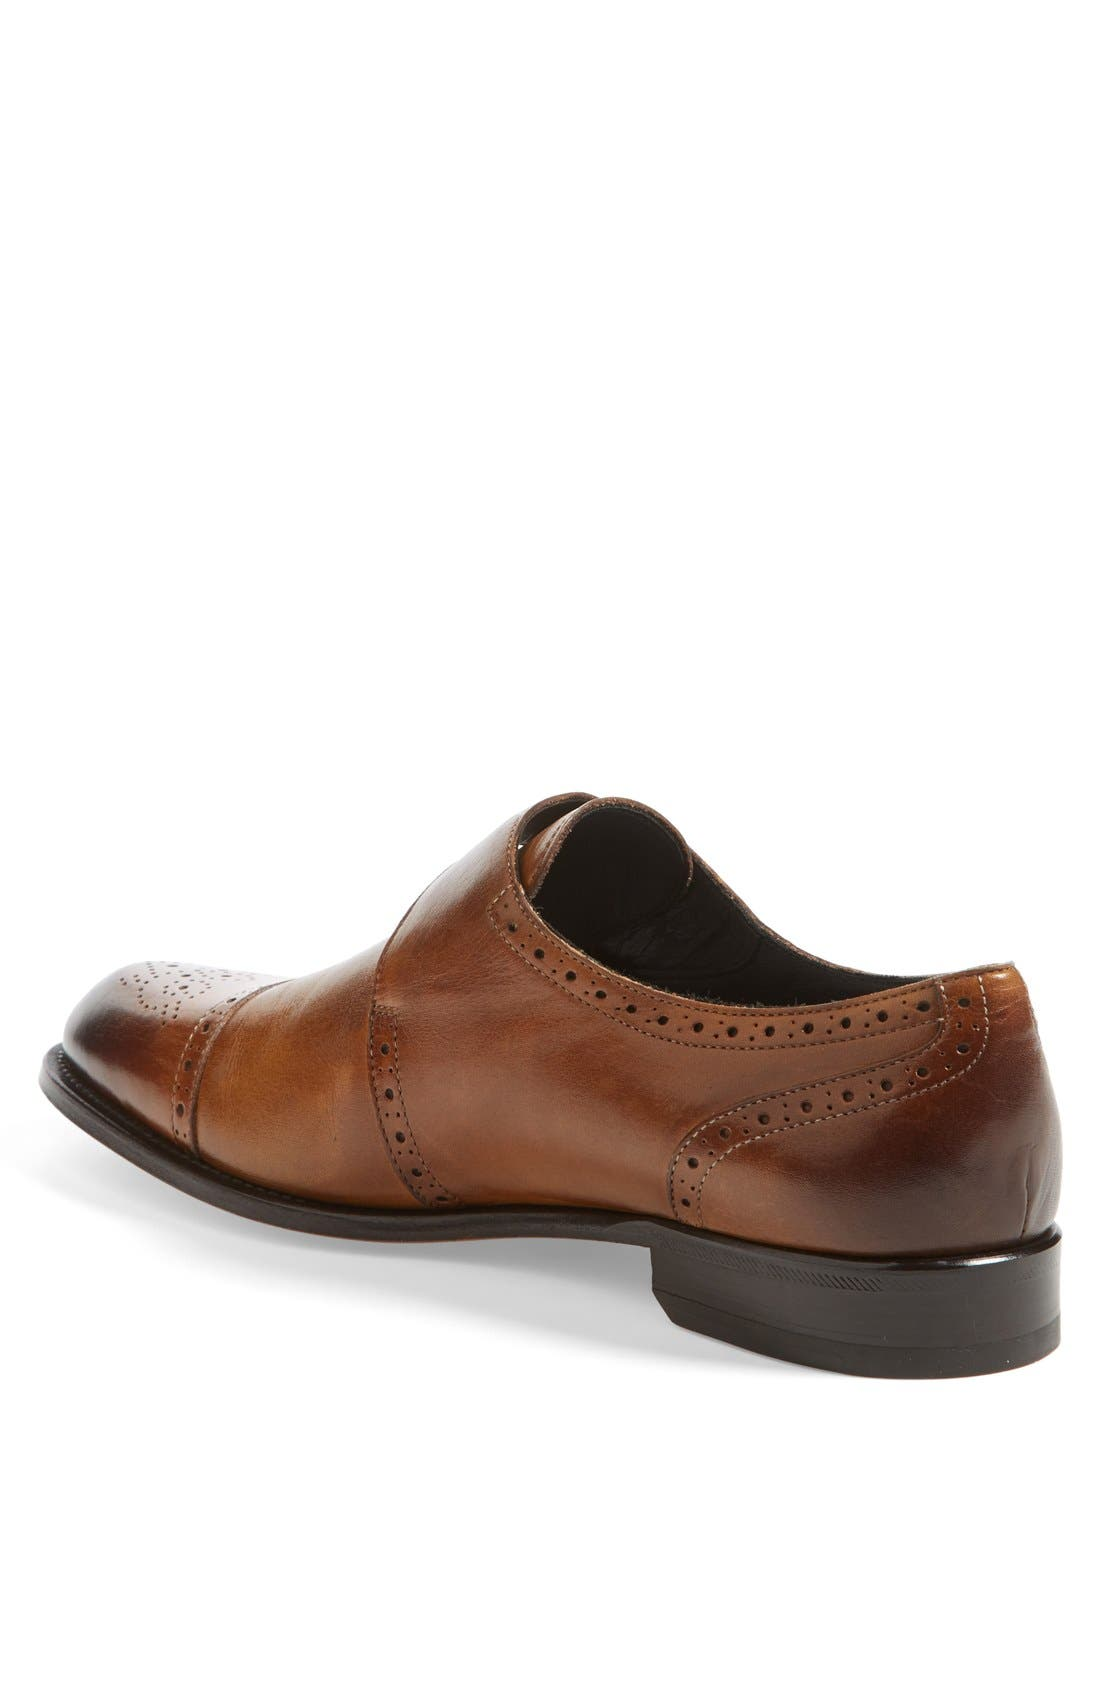 Alternate Image 2  - Bruno Magli 'Rovani' Monk Shoe